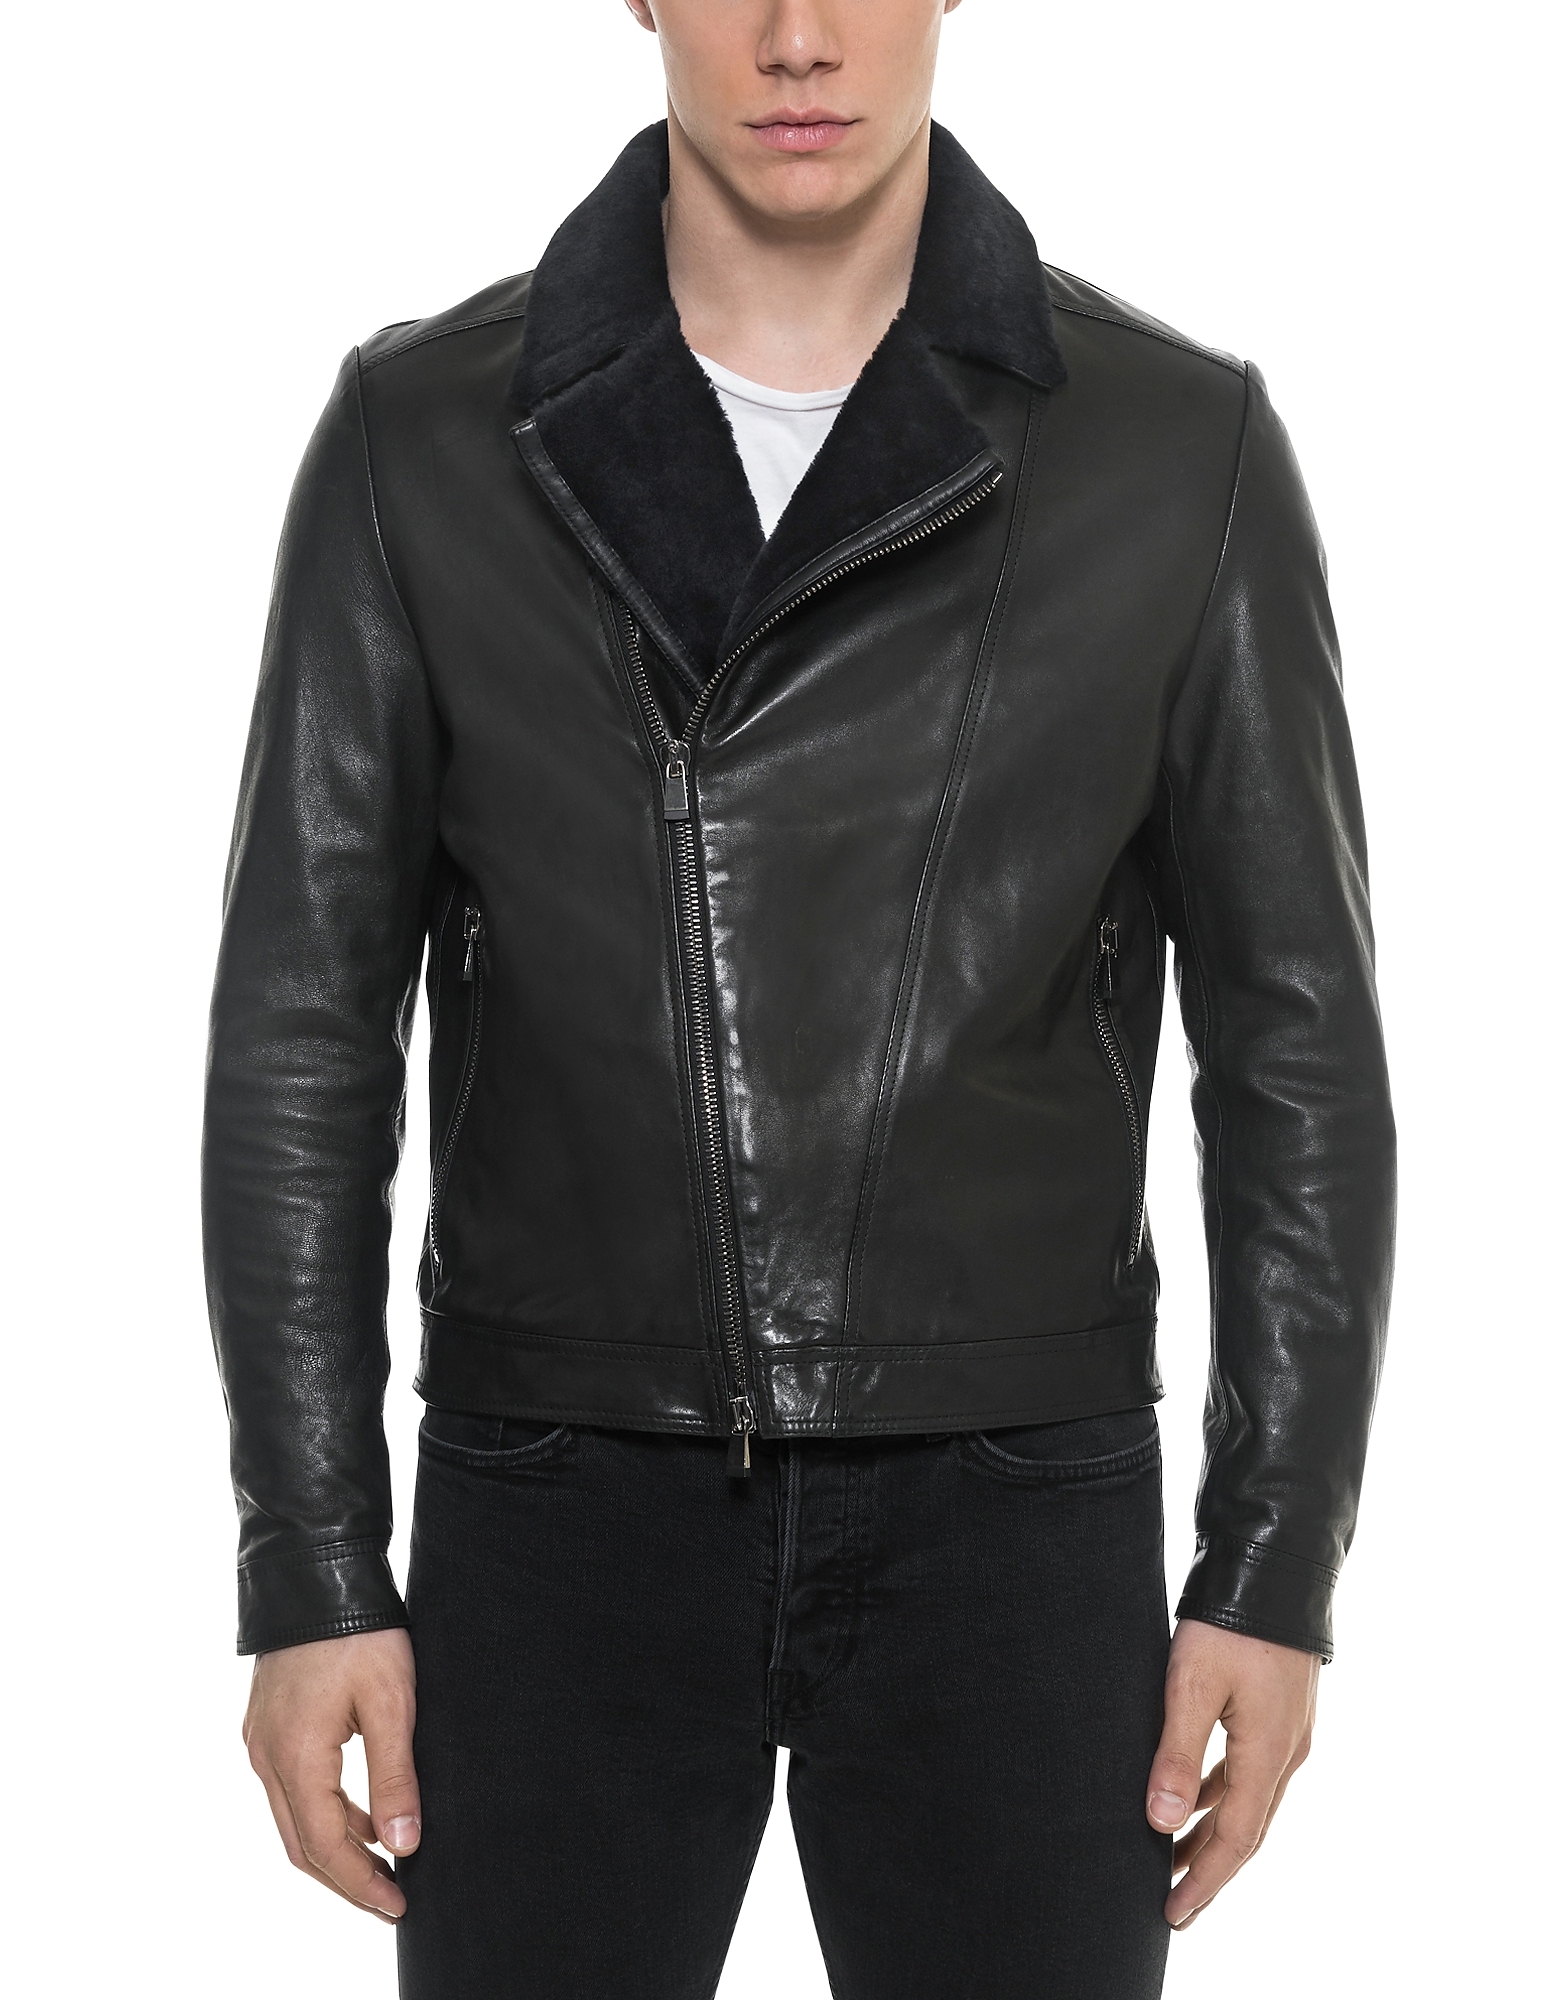 Forzieri Leather Jackets, Black Padded Leather and Shearling Men's Biker Jacket